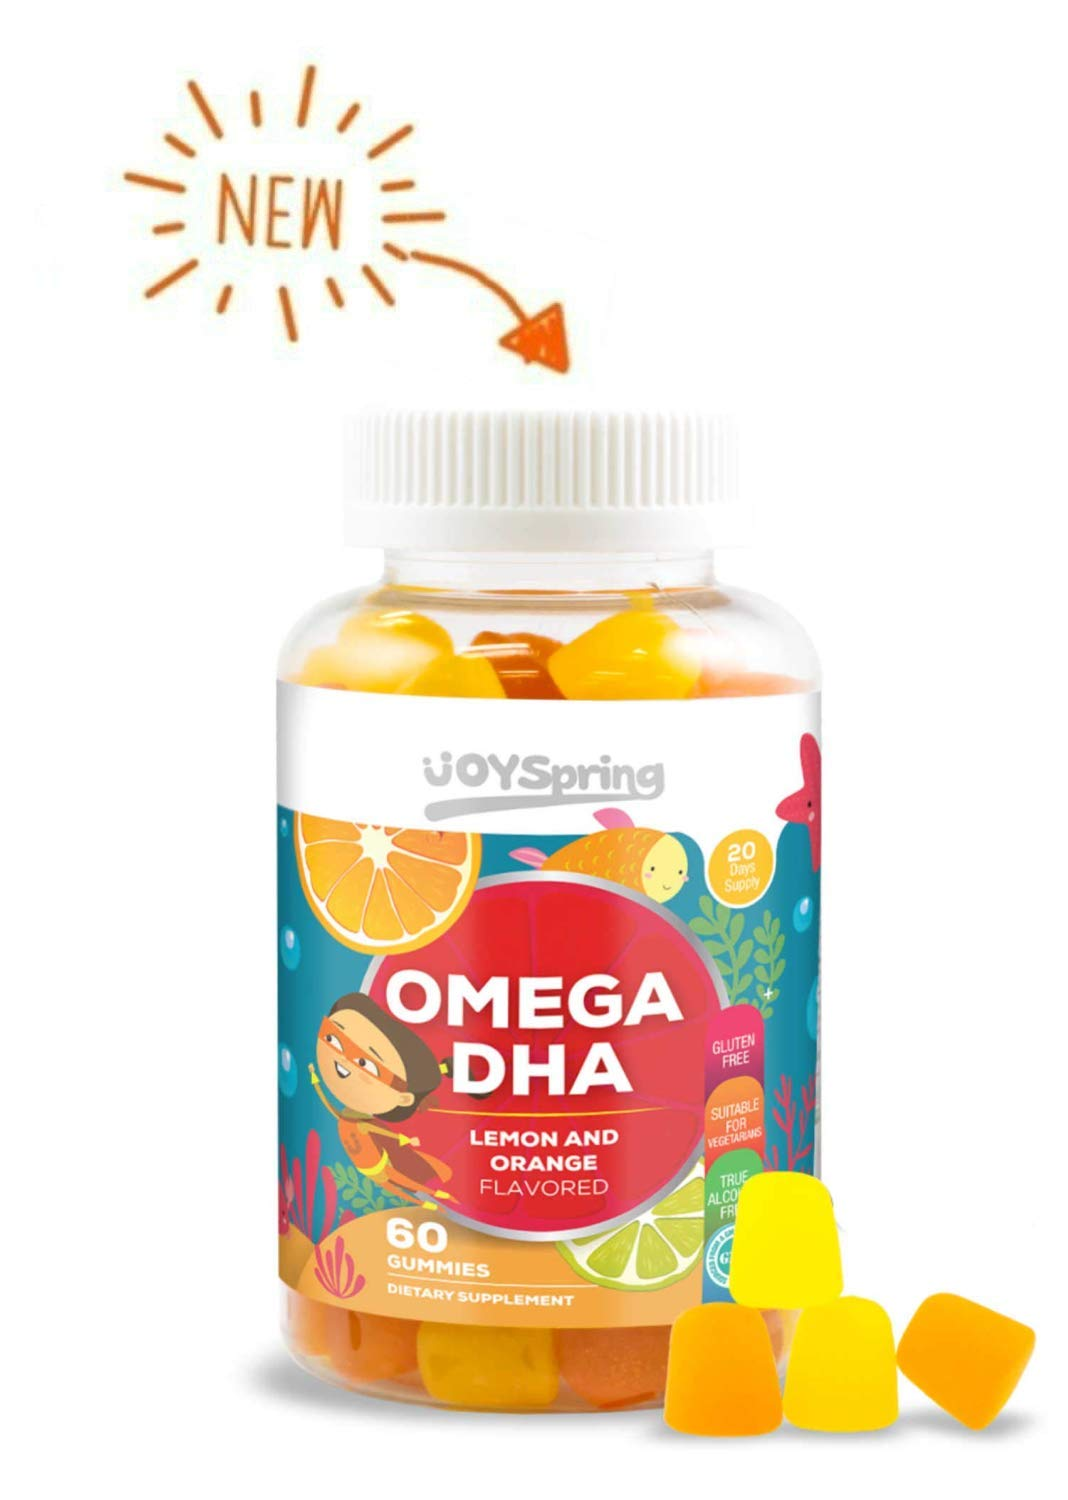 Omega 3 for Kids Gummies - DHA for Kids - Great Tasting Kids Omega 3 Gummies - Gluten Free Brain Food and Speech Support for Toddlers - No Fishy Taste - Made by Parents by JoySpring